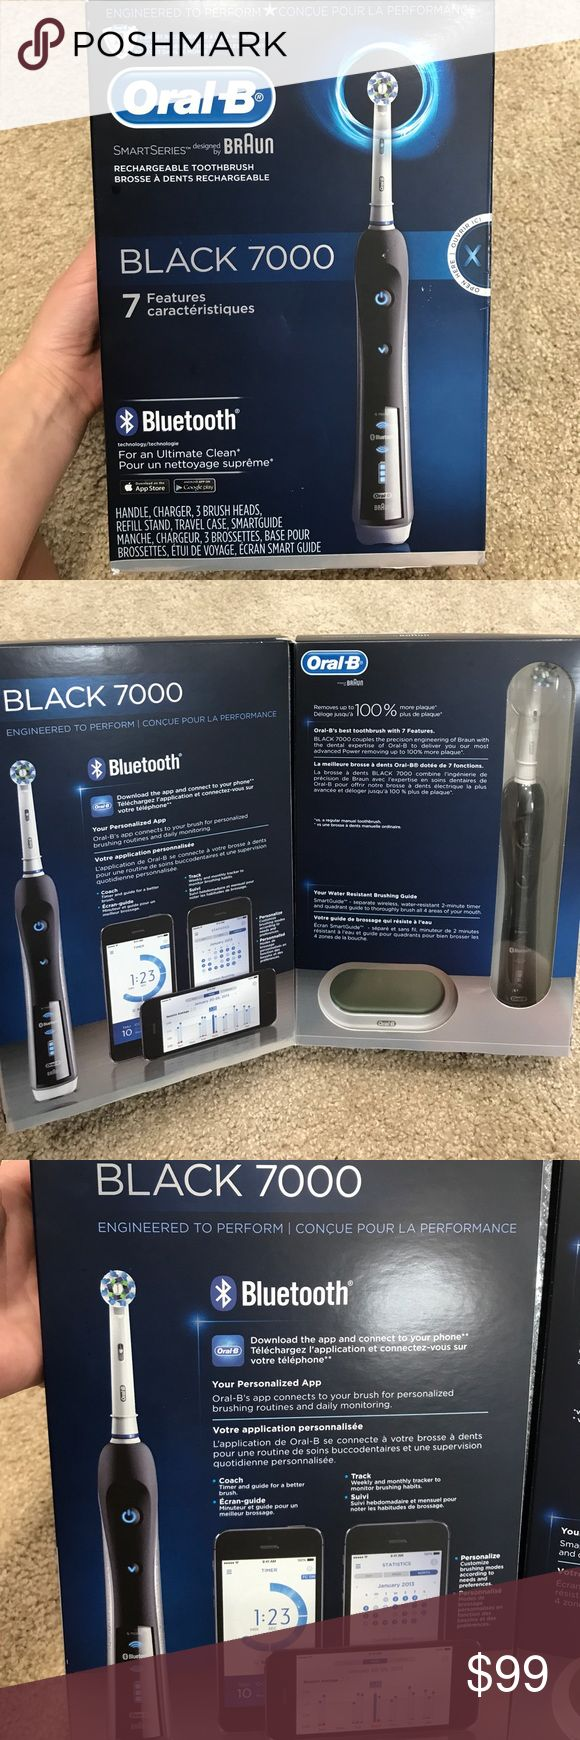 Oral B black 7000 toothbrush with Bluetooth The professionally inspired design of the Cross Action brush head surrounds each tooth with bristles angled at 16 degrees, and 3D cleaning action oscillates, rotates, and pulsates to break up and remove up to 100% more plaque than a regular manual toothbrush. The pressure sensor lights up if you brush too hard to prevent harmful over-brushing and there are 6 modes and a timer to help you brush for a dentist-recommended 2 minutes. Brought to you by…